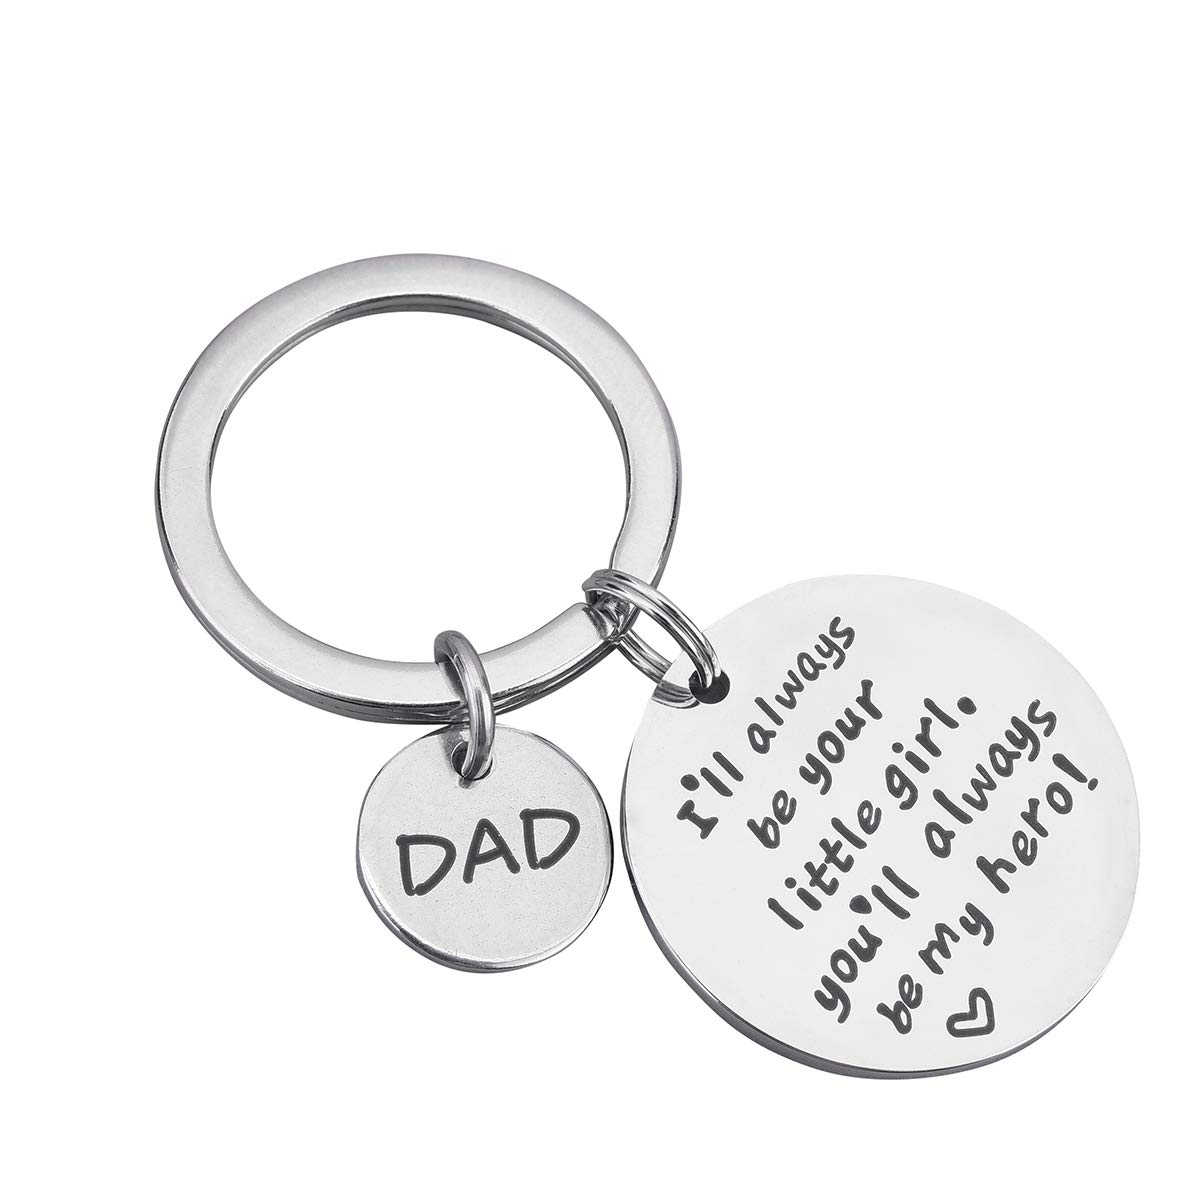 Dad Gifts keychain Father Day Birthday Personalized Jewelry Keychain from Son Daughter Teens